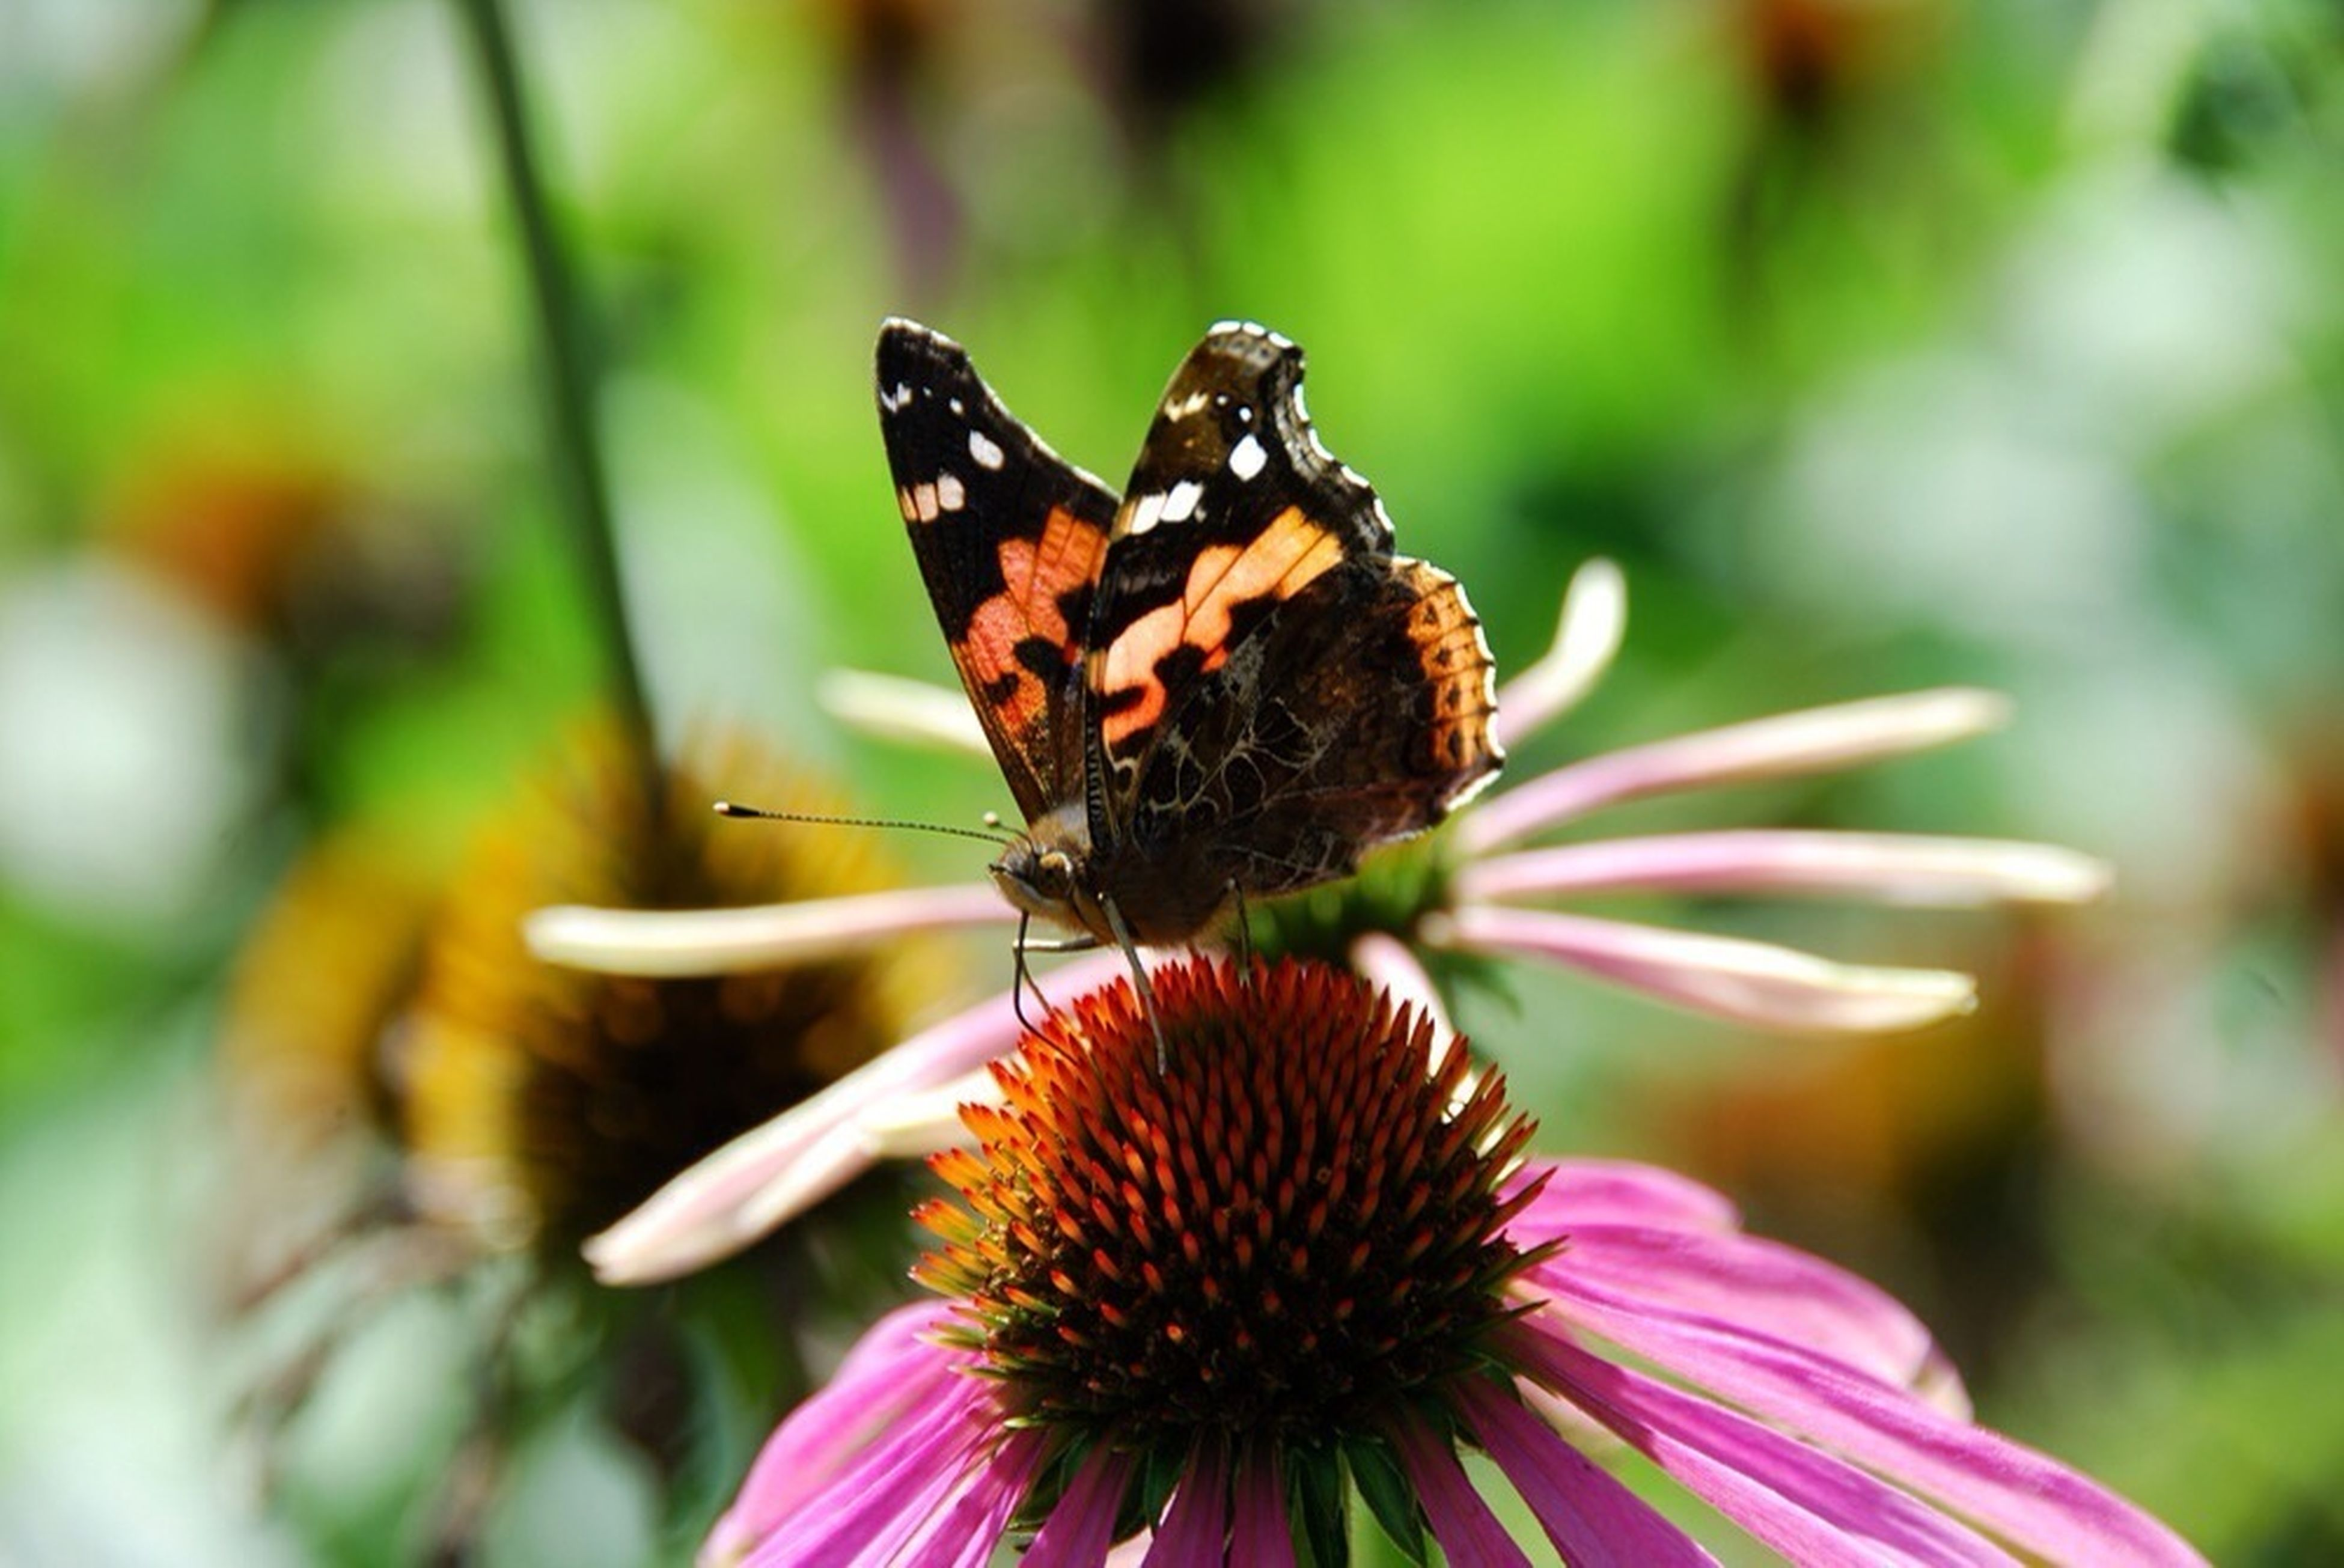 flower, one animal, animal themes, insect, petal, animals in the wild, pollination, freshness, fragility, flower head, wildlife, close-up, focus on foreground, beauty in nature, butterfly - insect, growth, nature, butterfly, symbiotic relationship, pollen